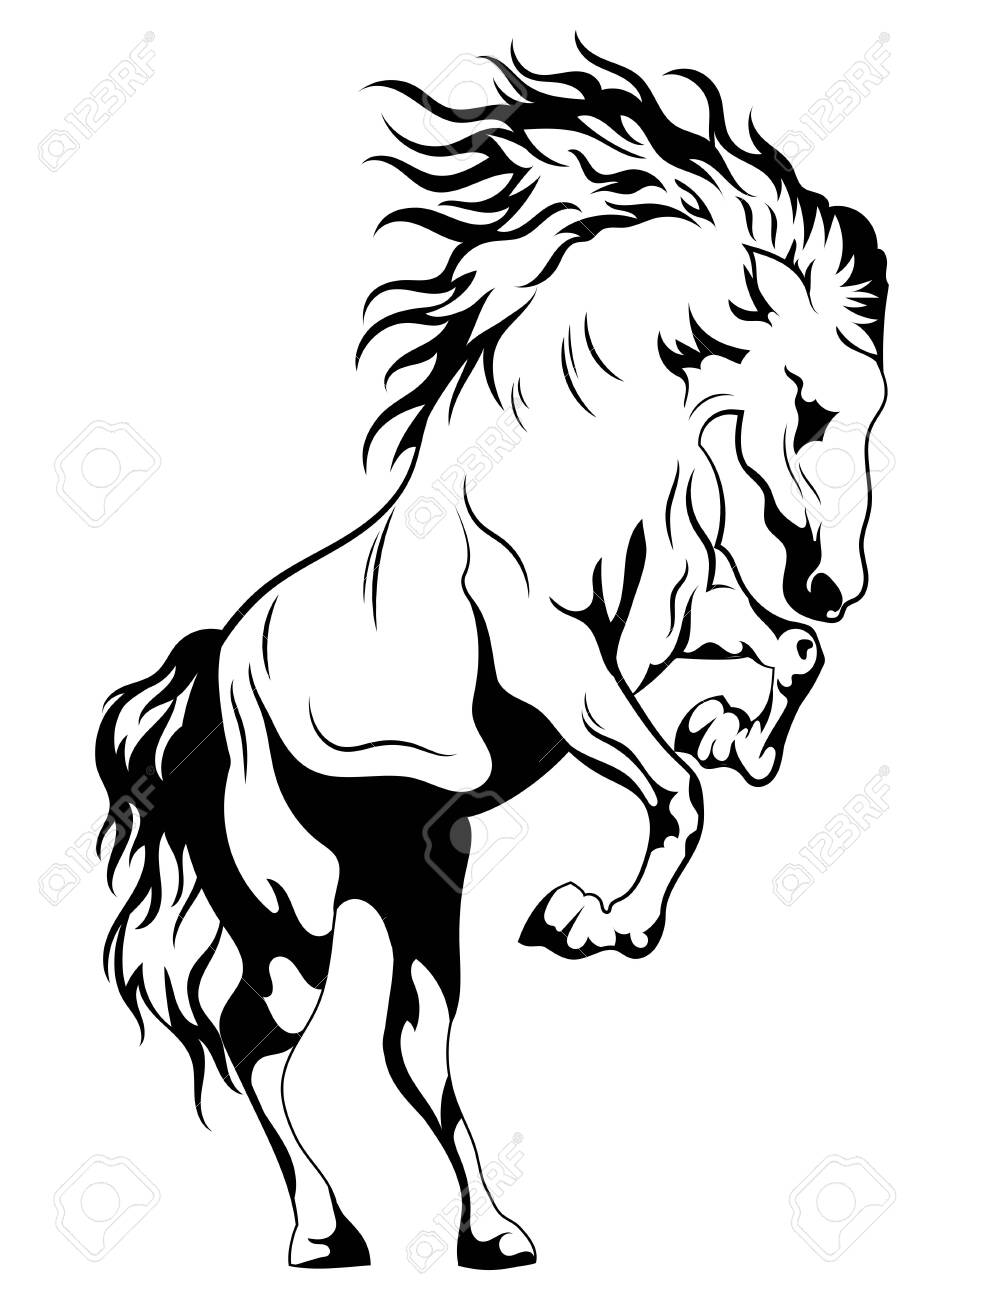 Wild Horse Black And White Illustration Of A Mustang Standing Royalty Free Cliparts Vectors And Stock Illustration Image 130641286